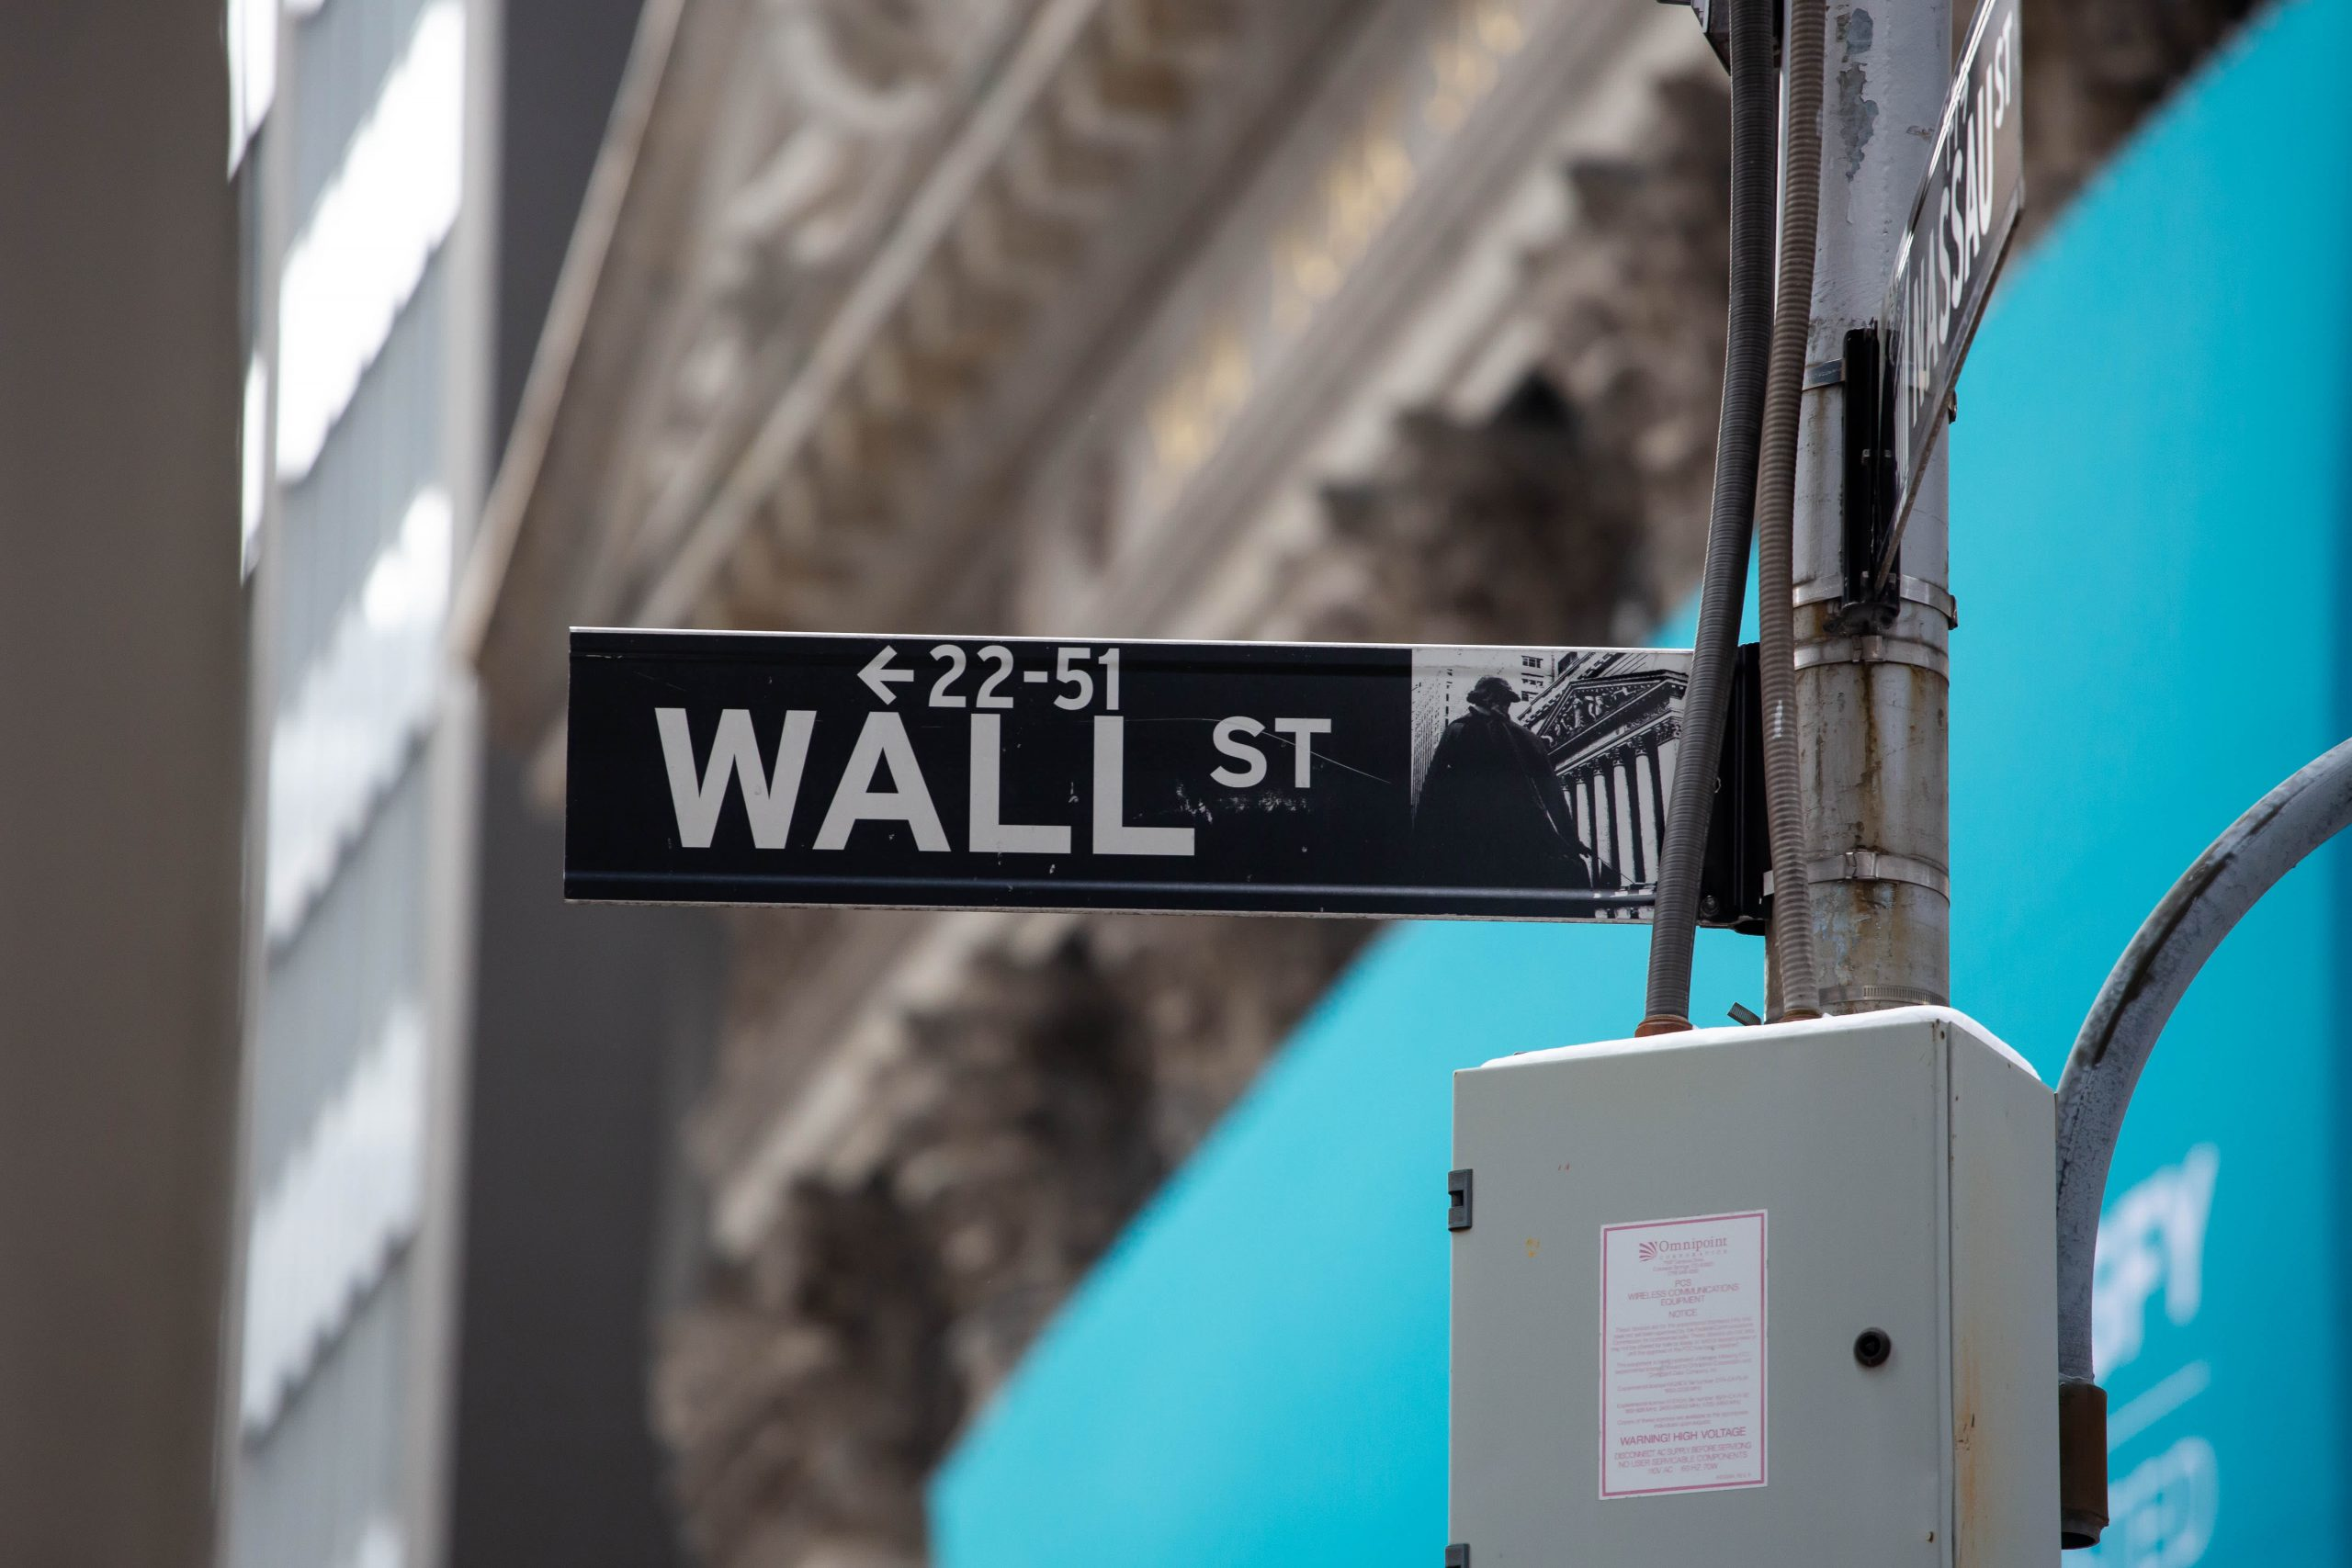 Stock futures slip after Dow, S&P 500 hit fresh records